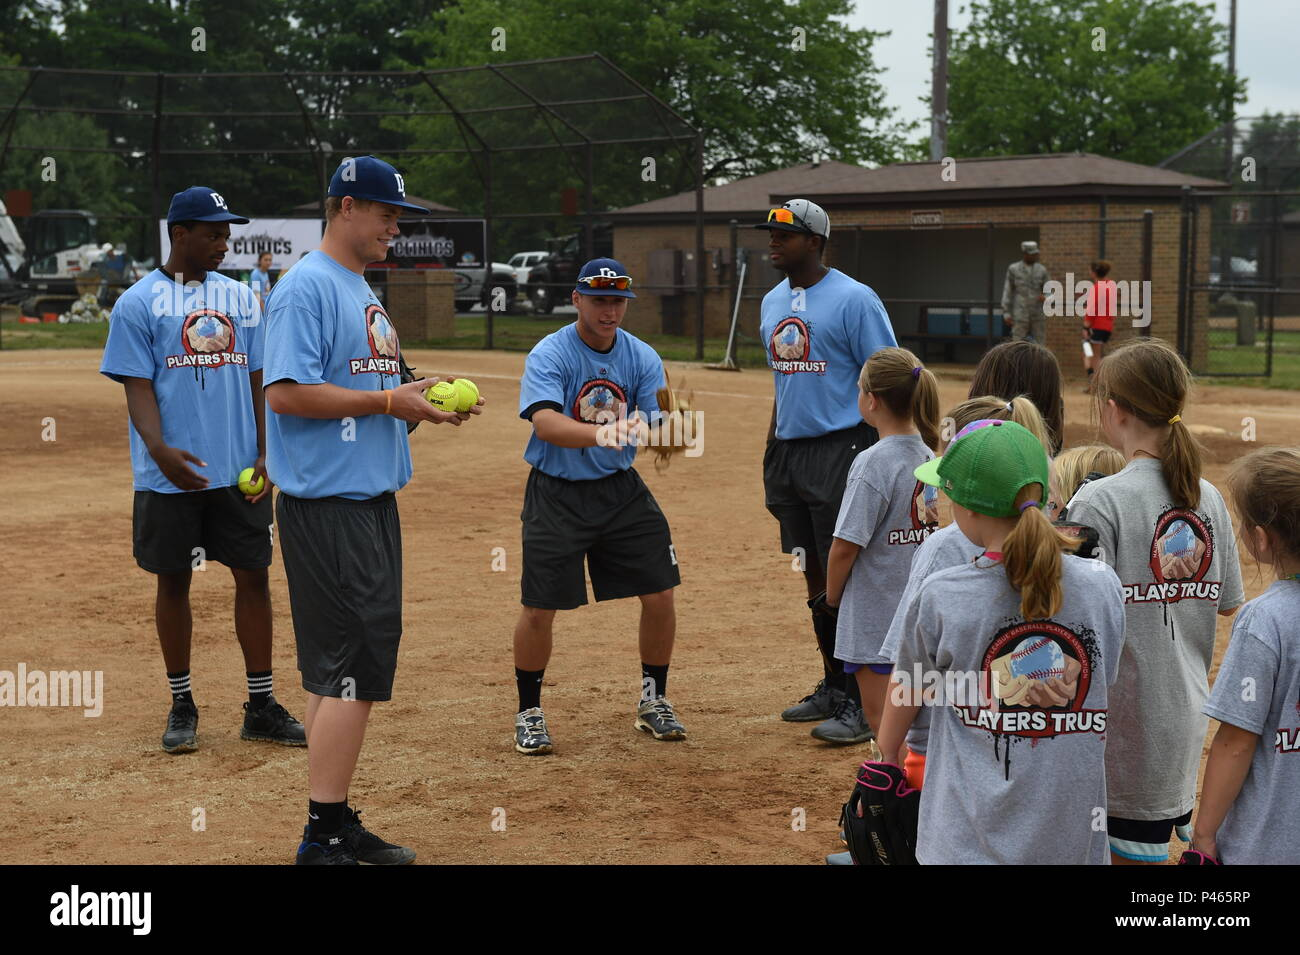 Collegiate baseball players teach pitching and catching